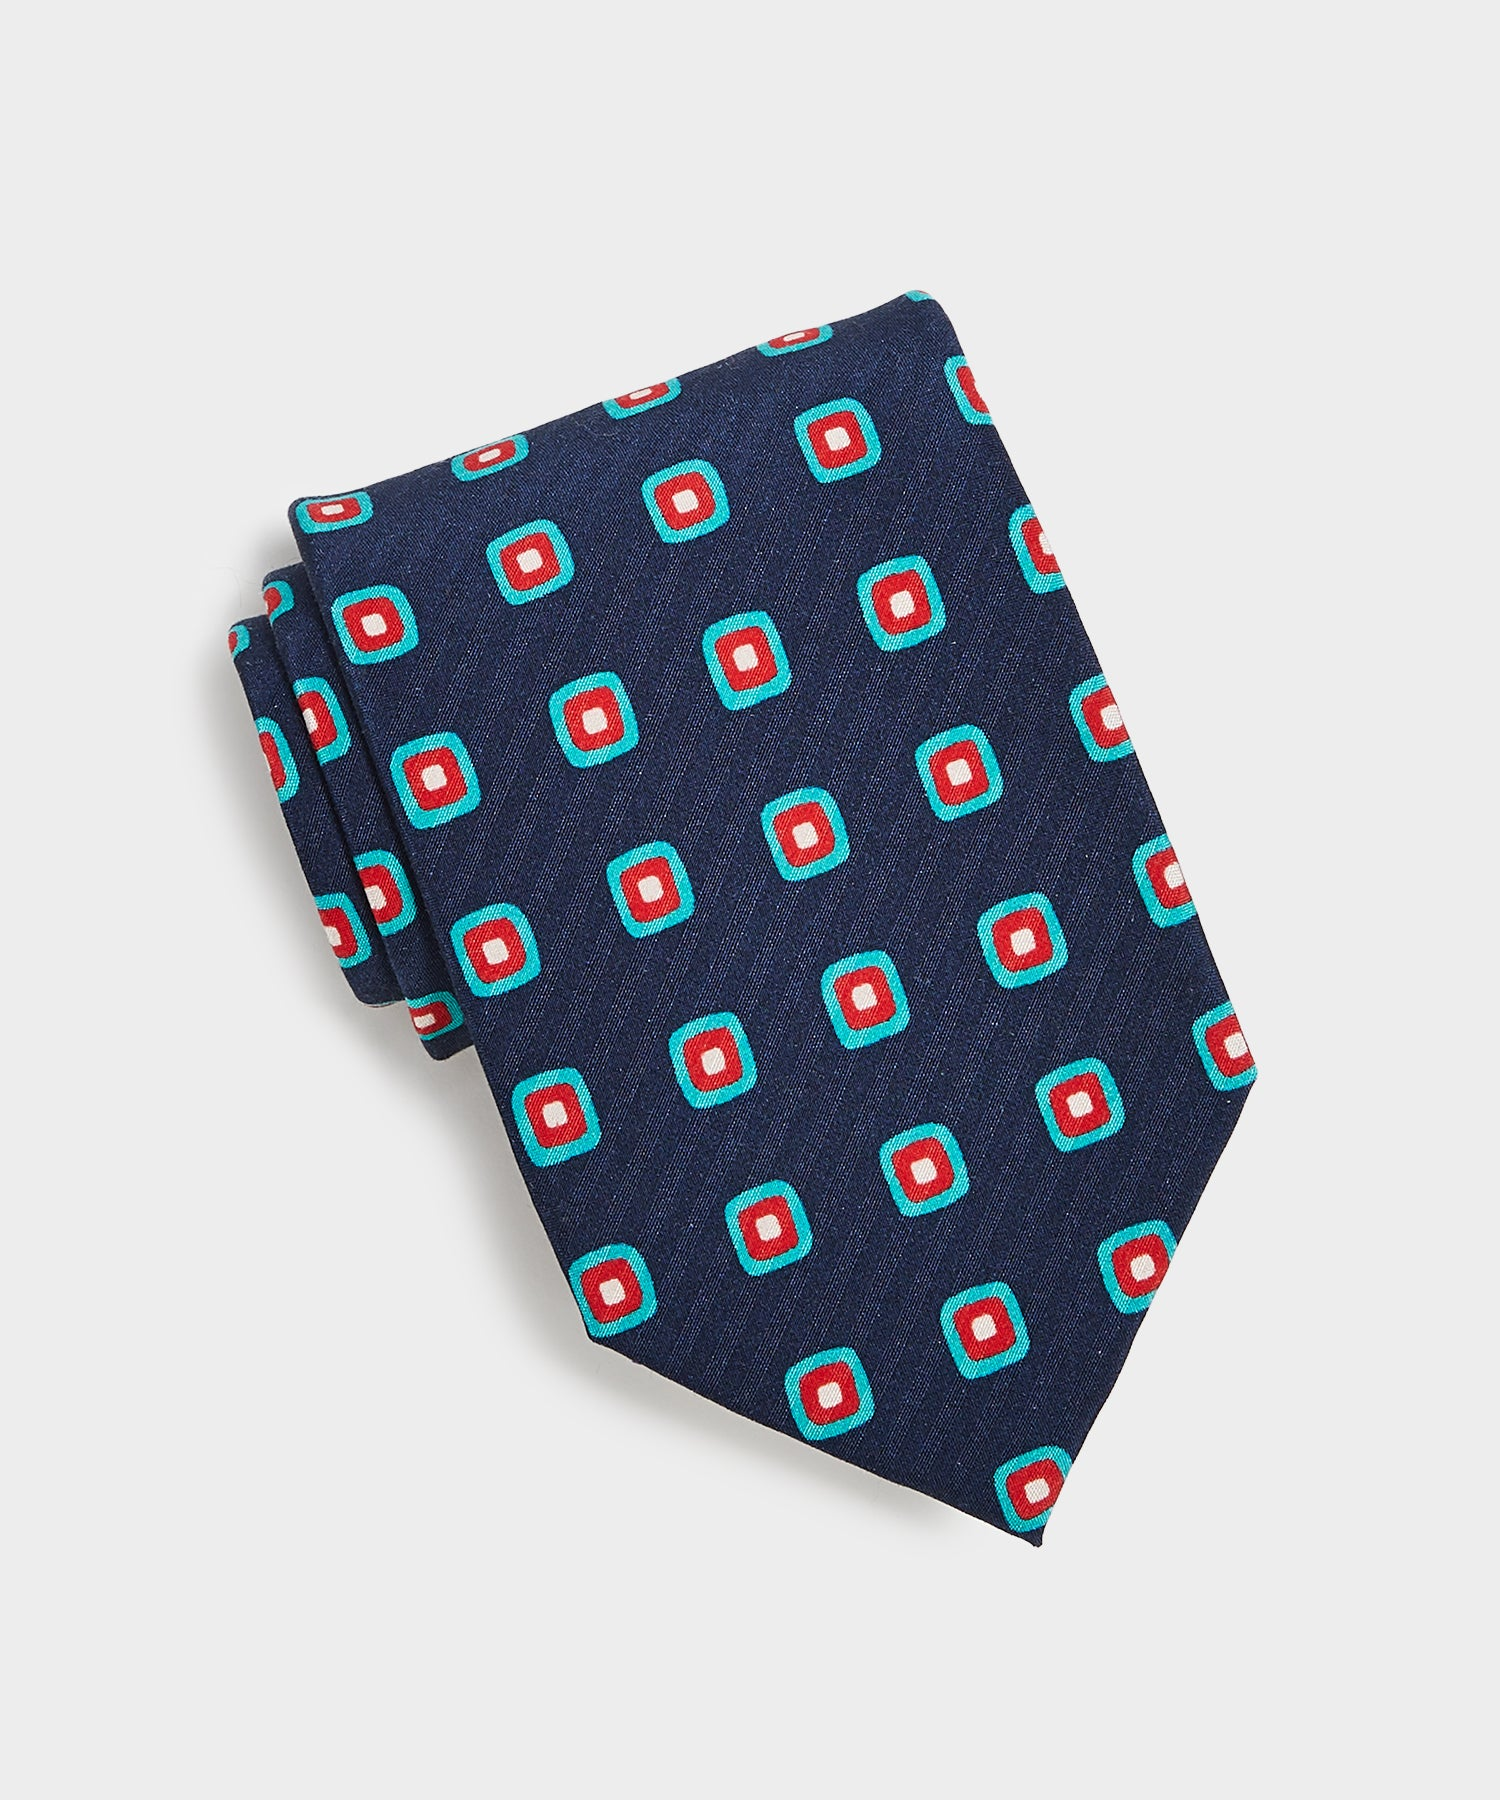 Drake's Square Tie in Navy